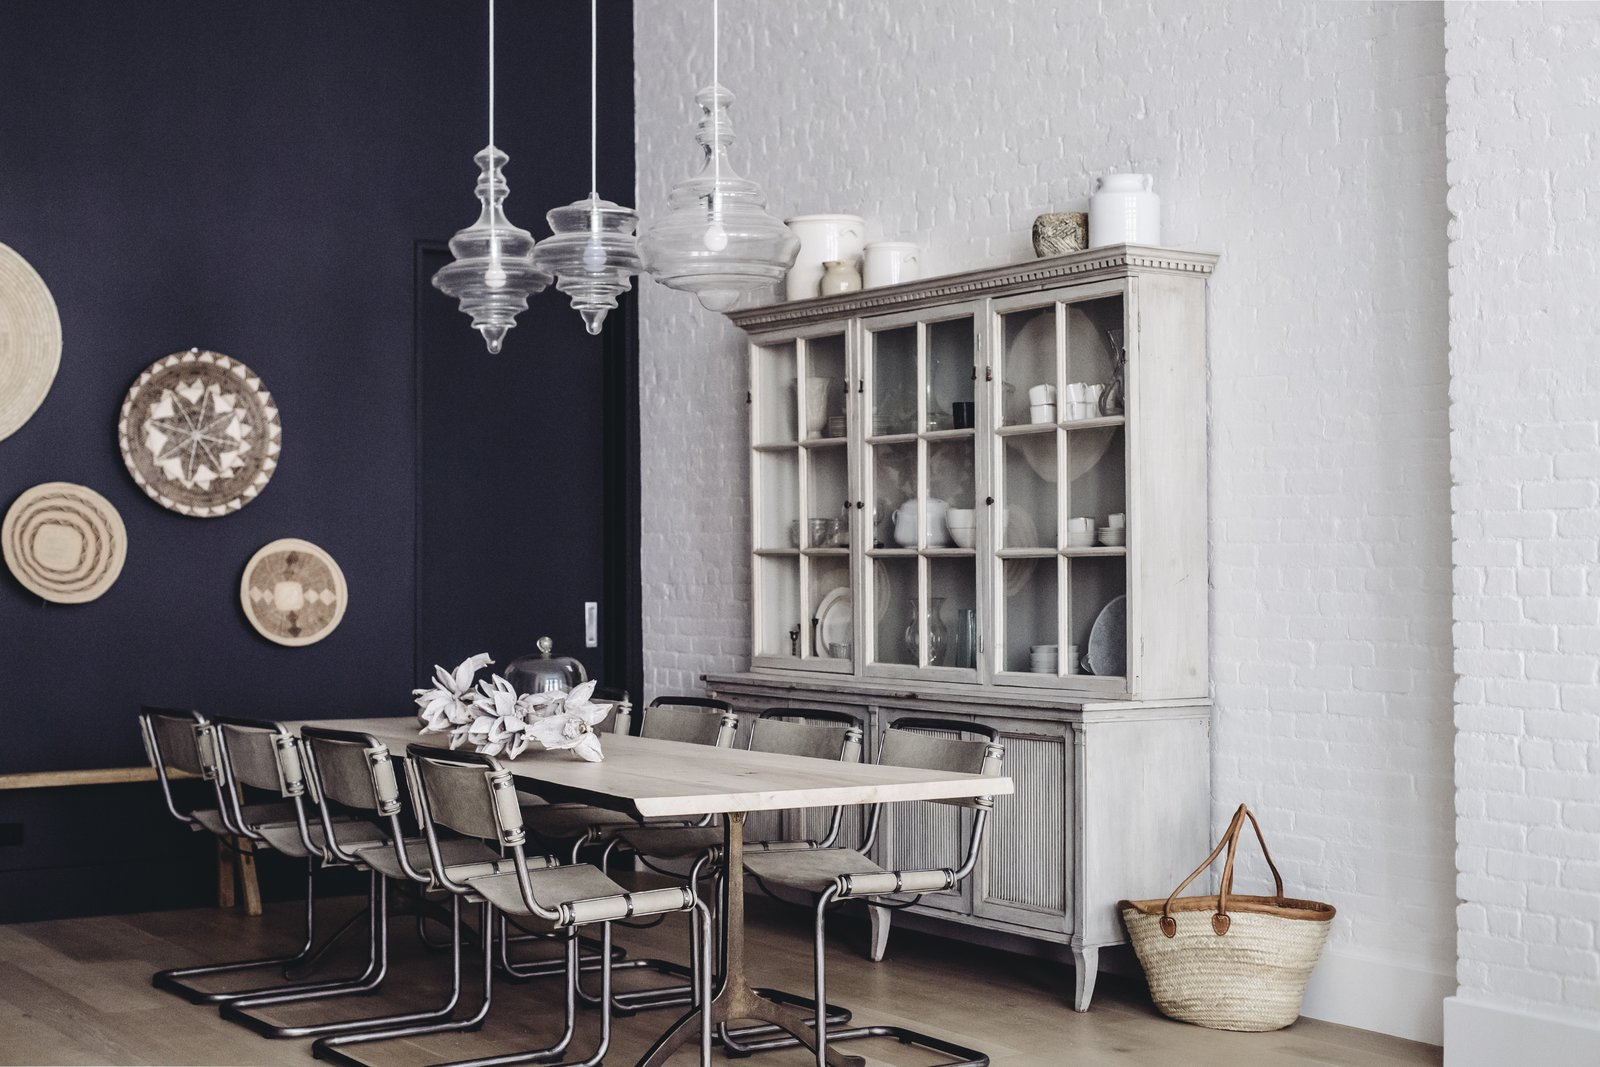 """The dining room melds a modern accent wall swathed in """"Railings"""" paint by Farrow and Ball with hanging wall baskets from Habitat Greenwich, bold pendants by Hudson Valley Lighting, and an antique hutch from Lone Ranger Antiques. In the center sits a dining table, custom created with Studio Endo, and chairs from Sarreid. (Chloe Leroux)"""